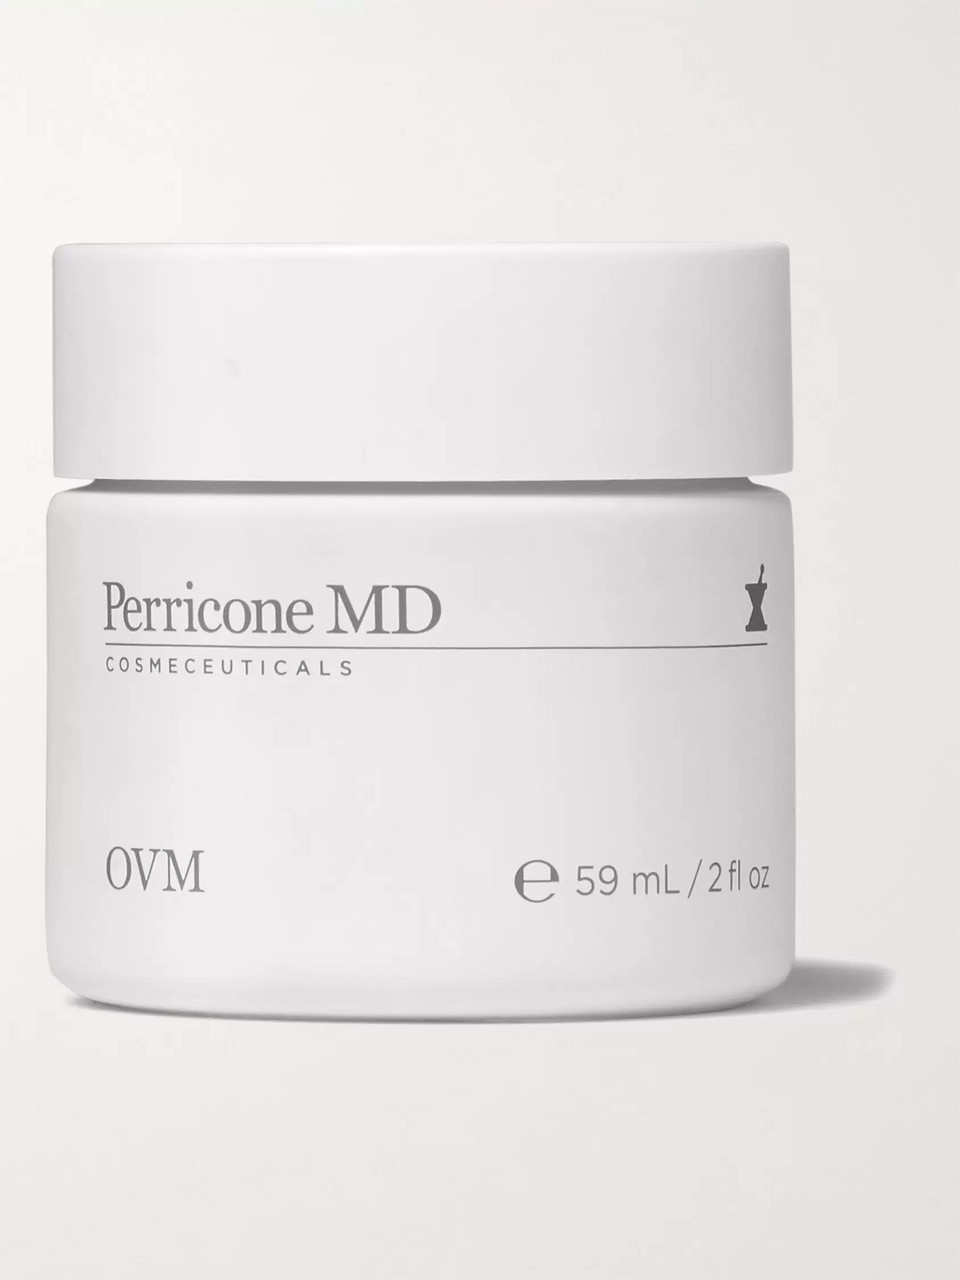 Perricone MD OVM Day Treatment, 59ml